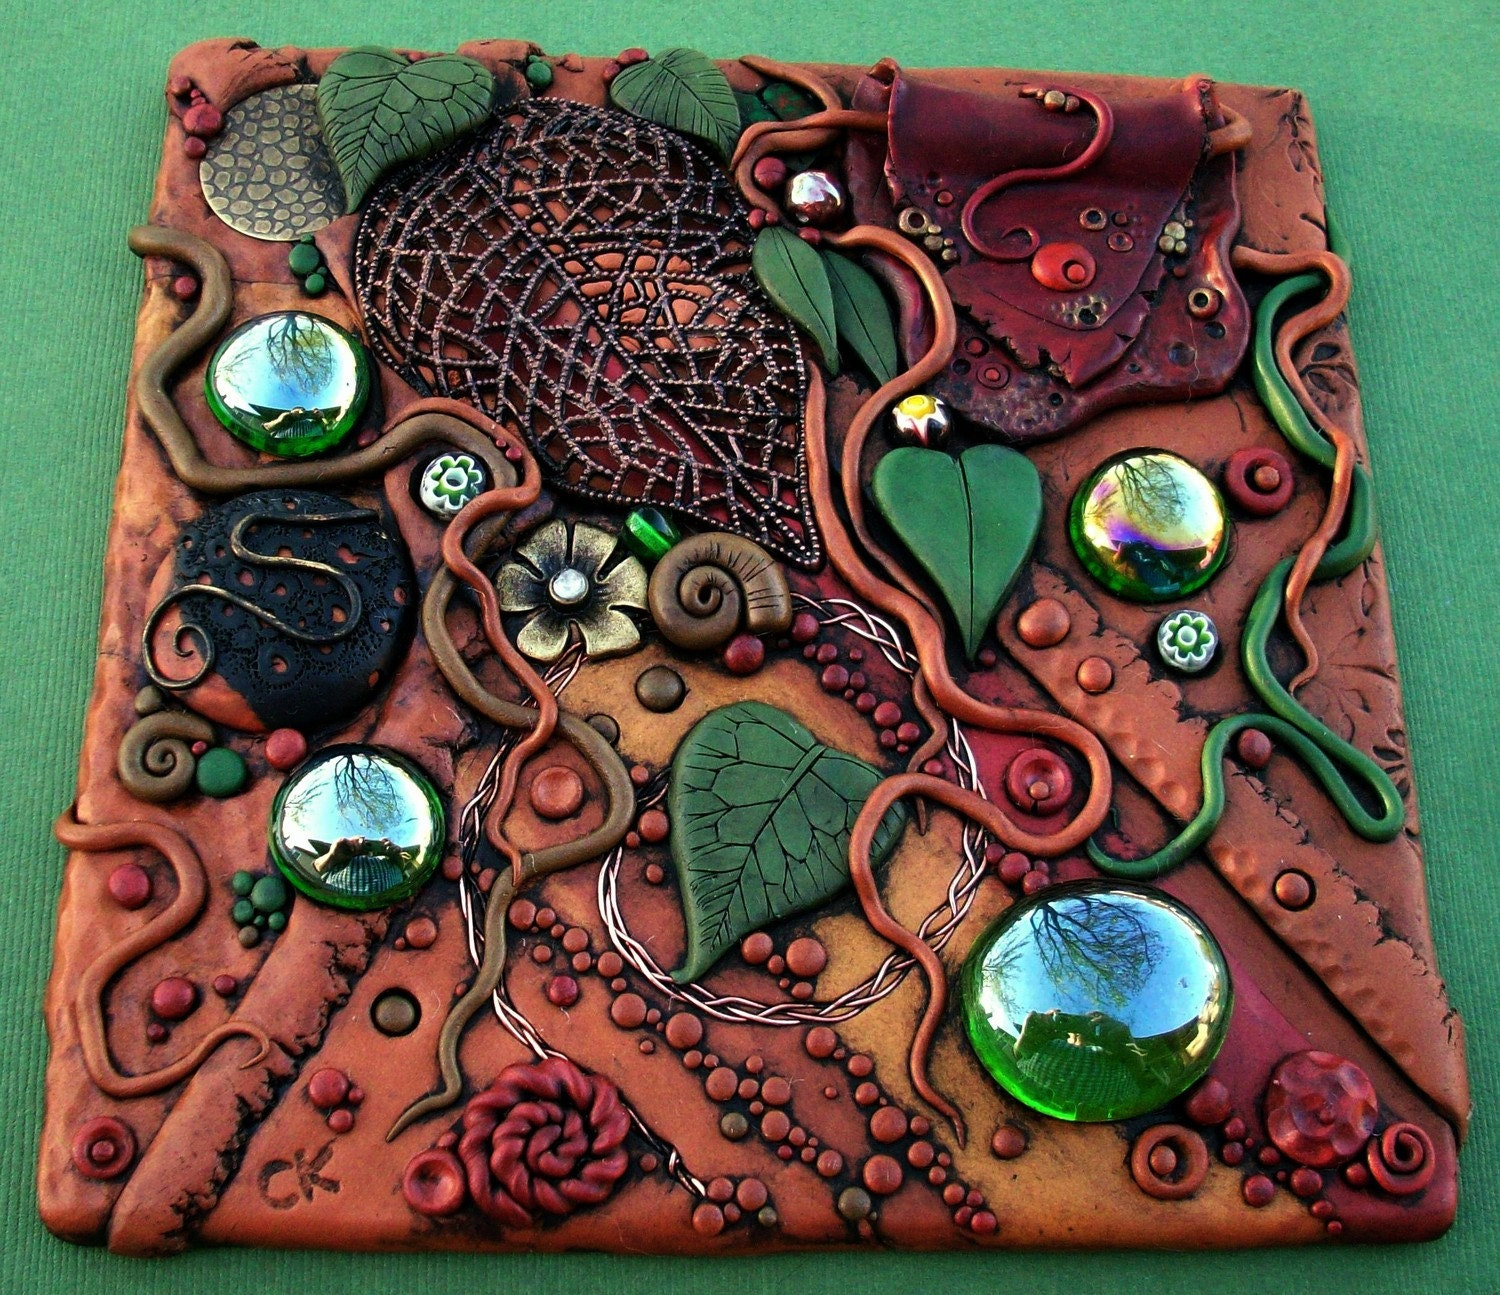 Mosaic Art Tile, Polymer clay, Found Objects, Original